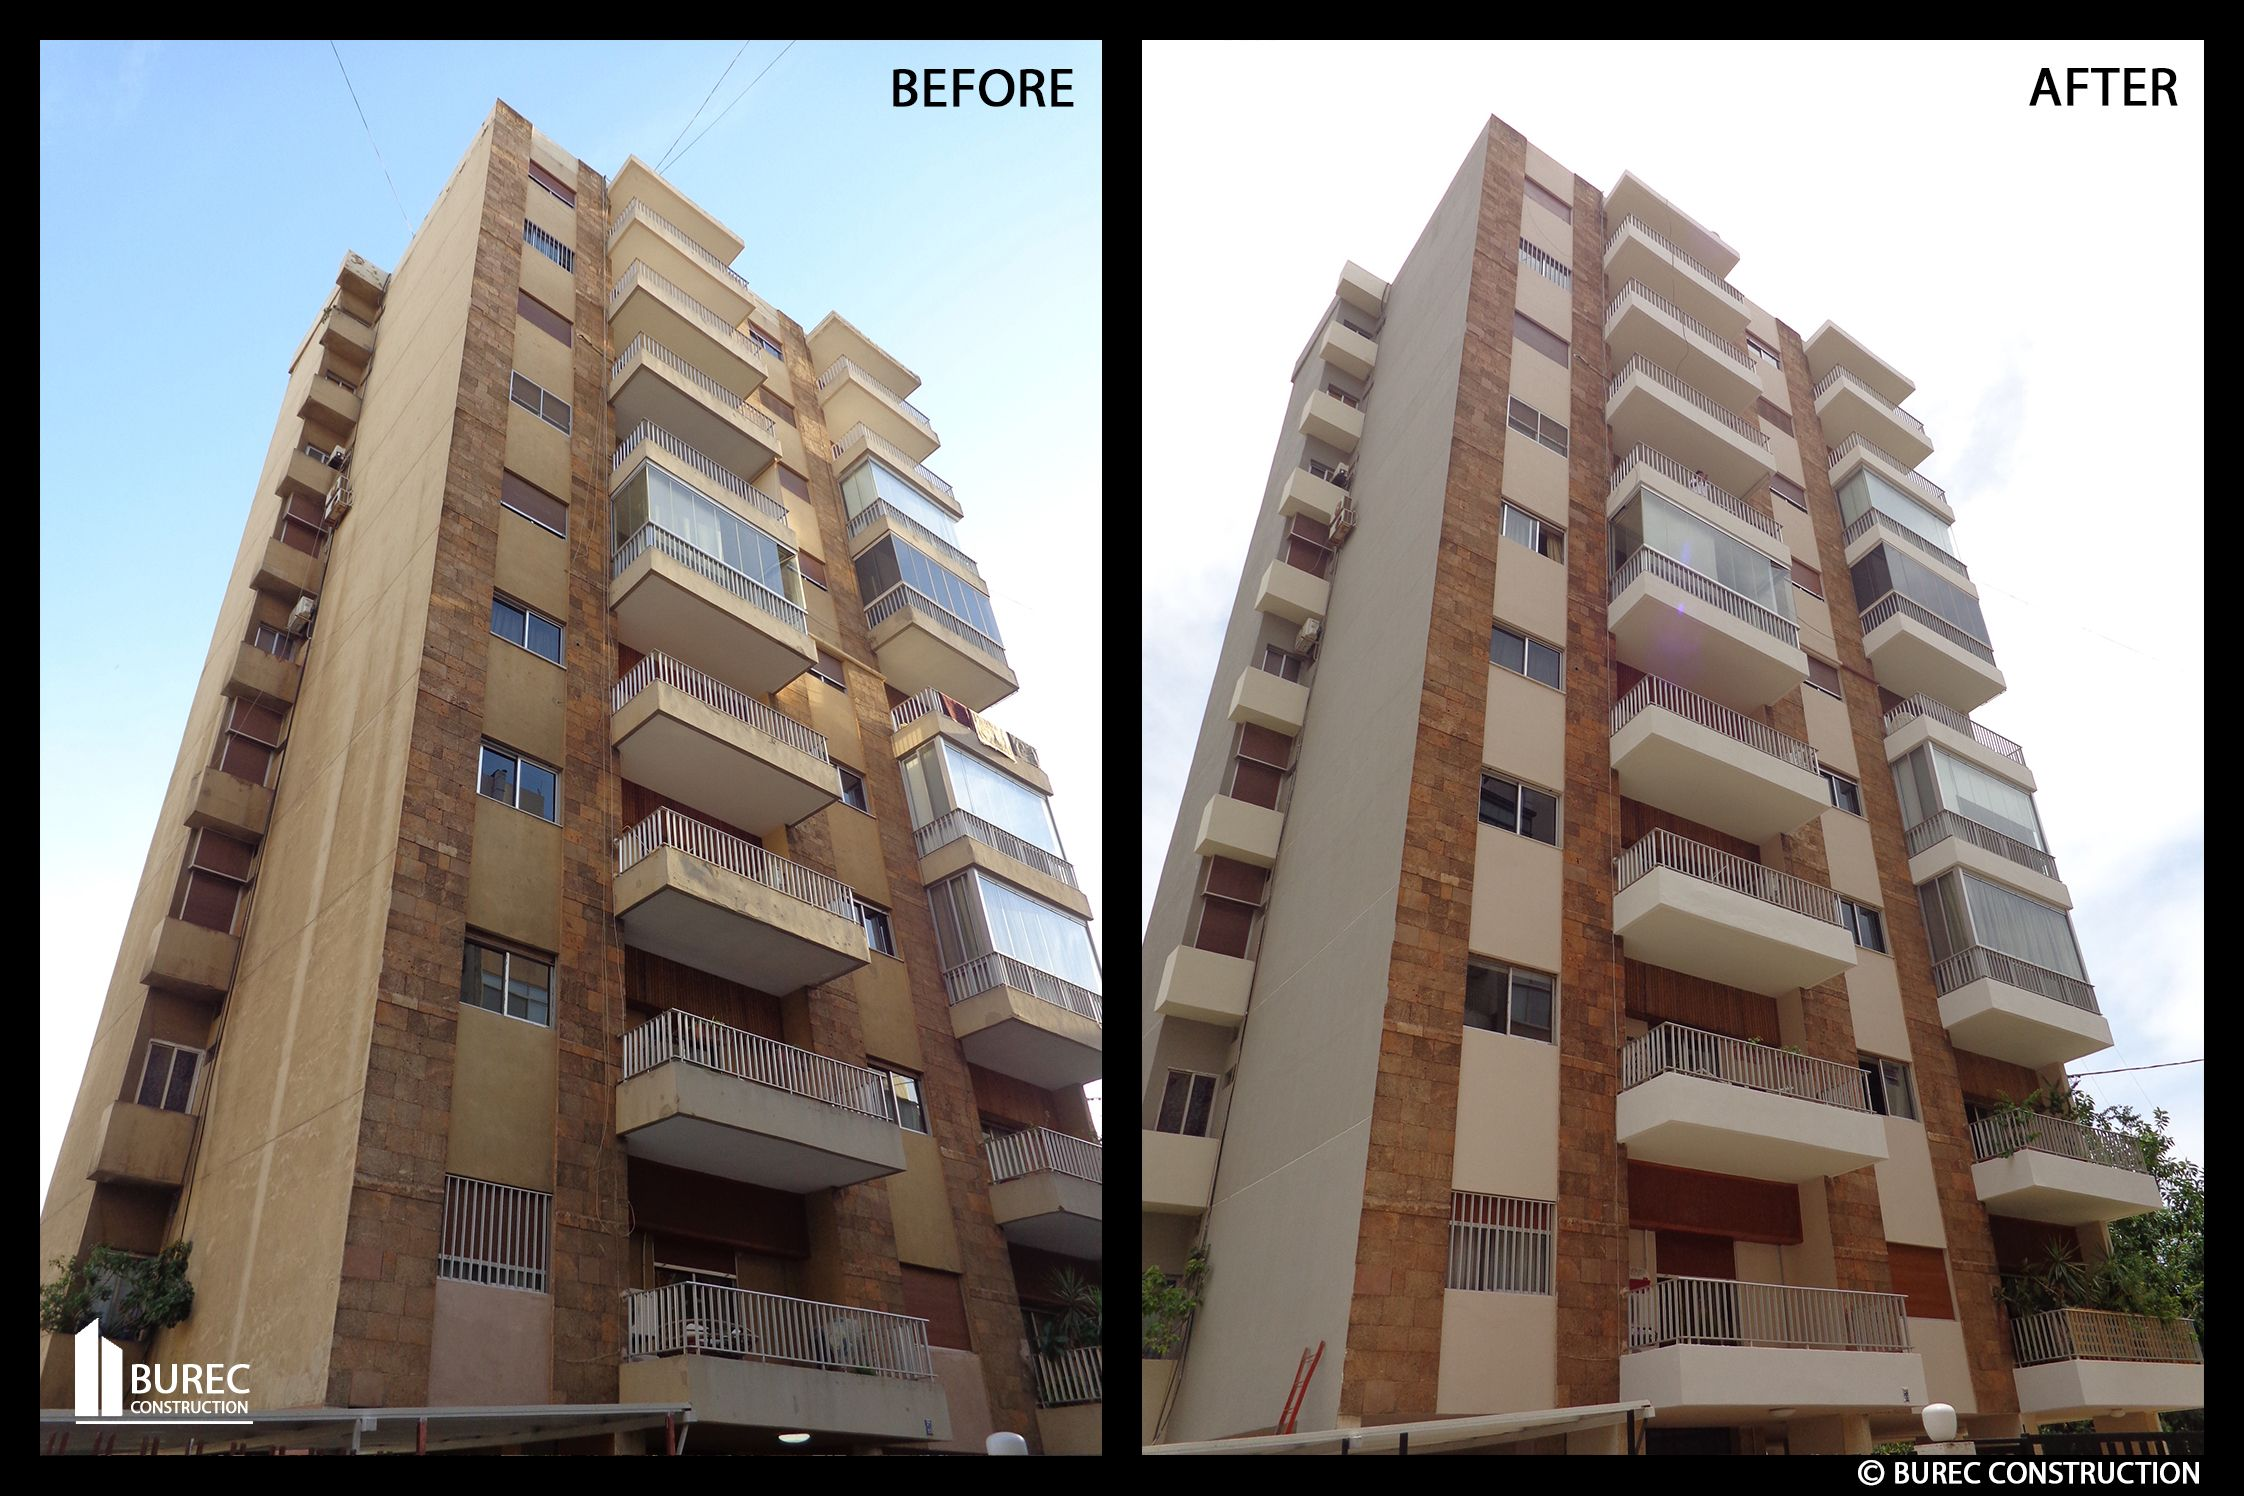 Residential To Commercial Property Before And After